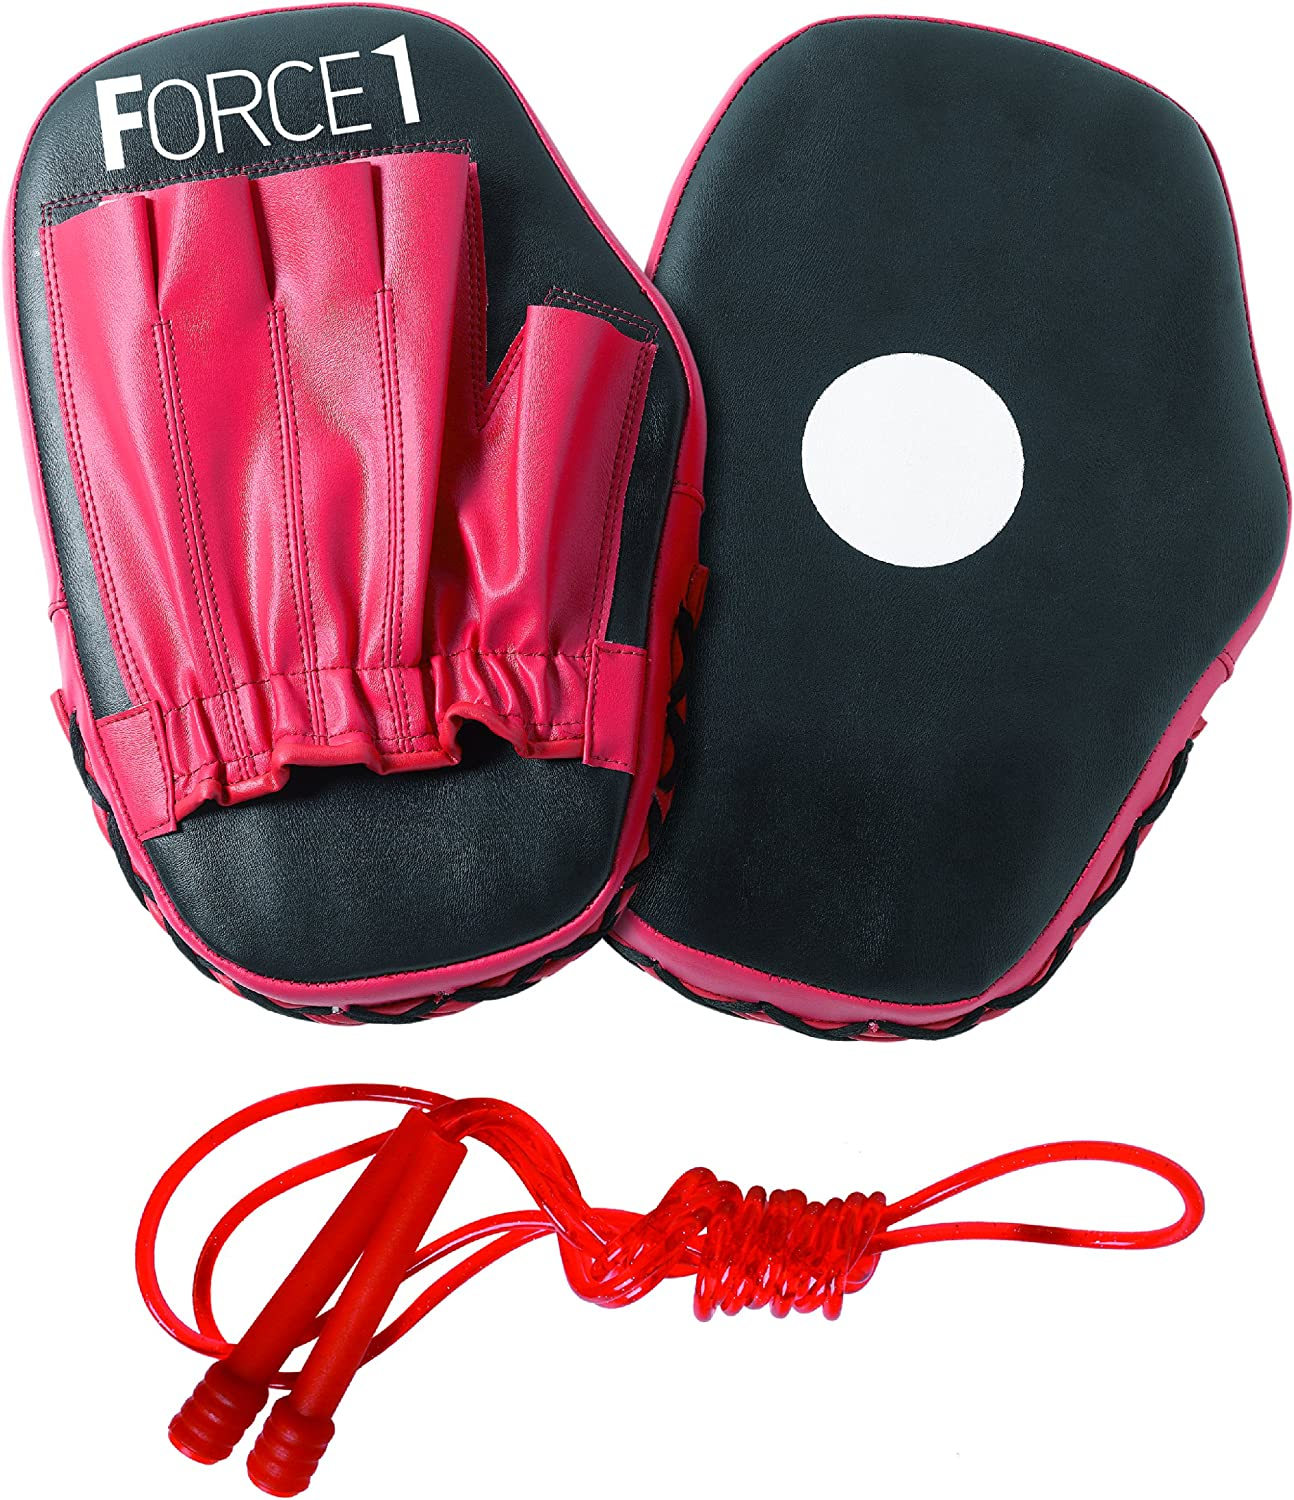 Black Force1 Focus Pads and Skipping Rope